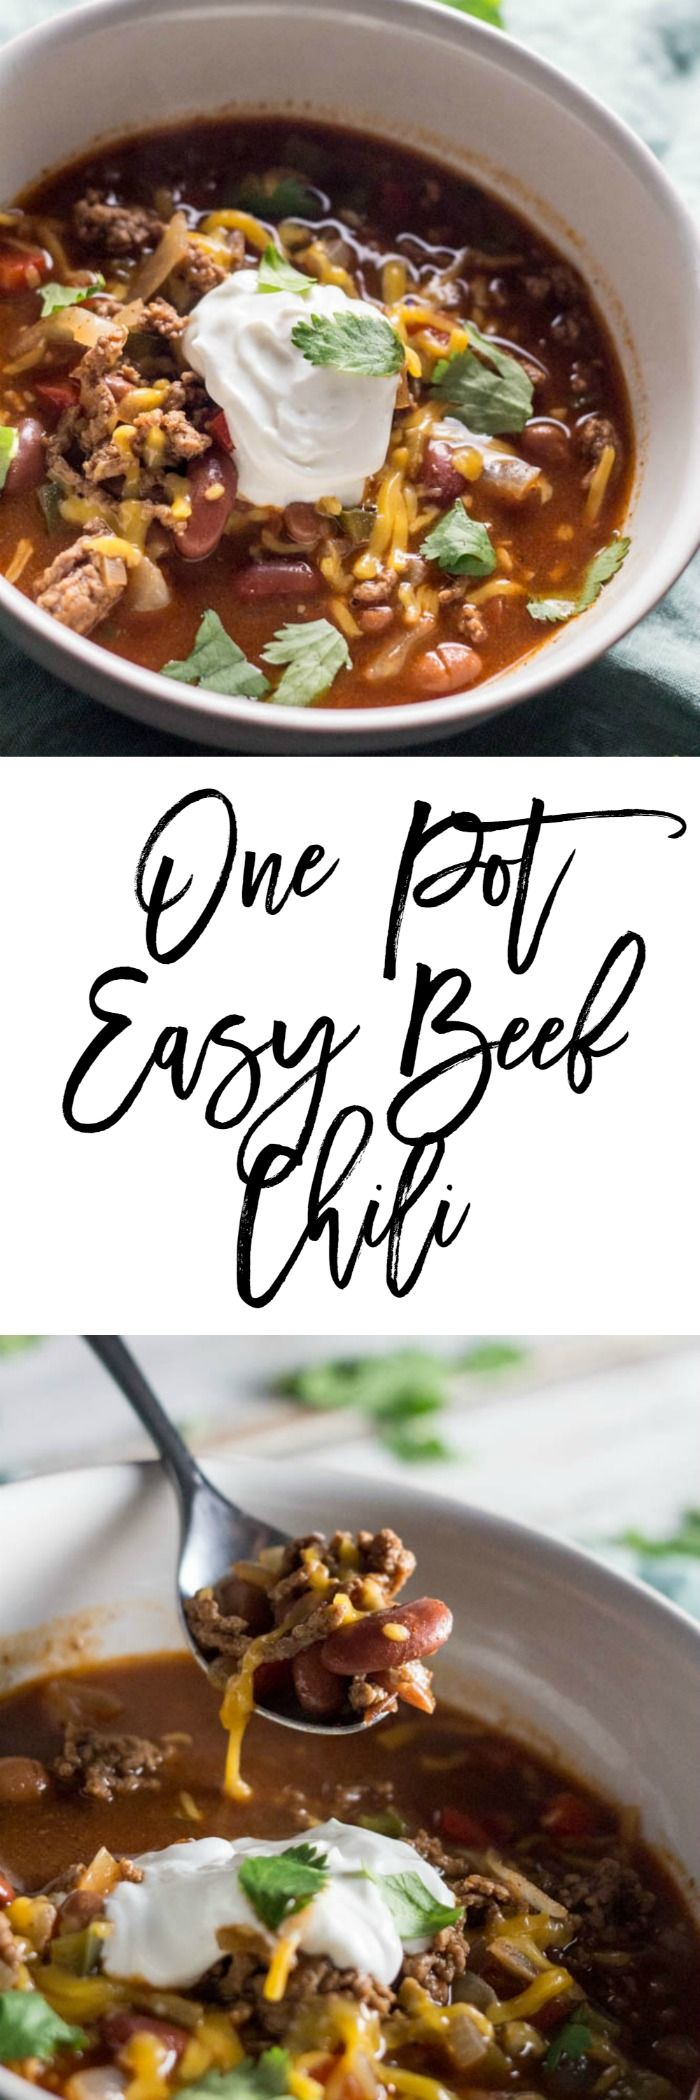 One Pot Easy Beef Chili - A deliciously easy recipe for when you are busy during the weeknights.  It's only 5 SmartPoints per serving on Weight Watchers.